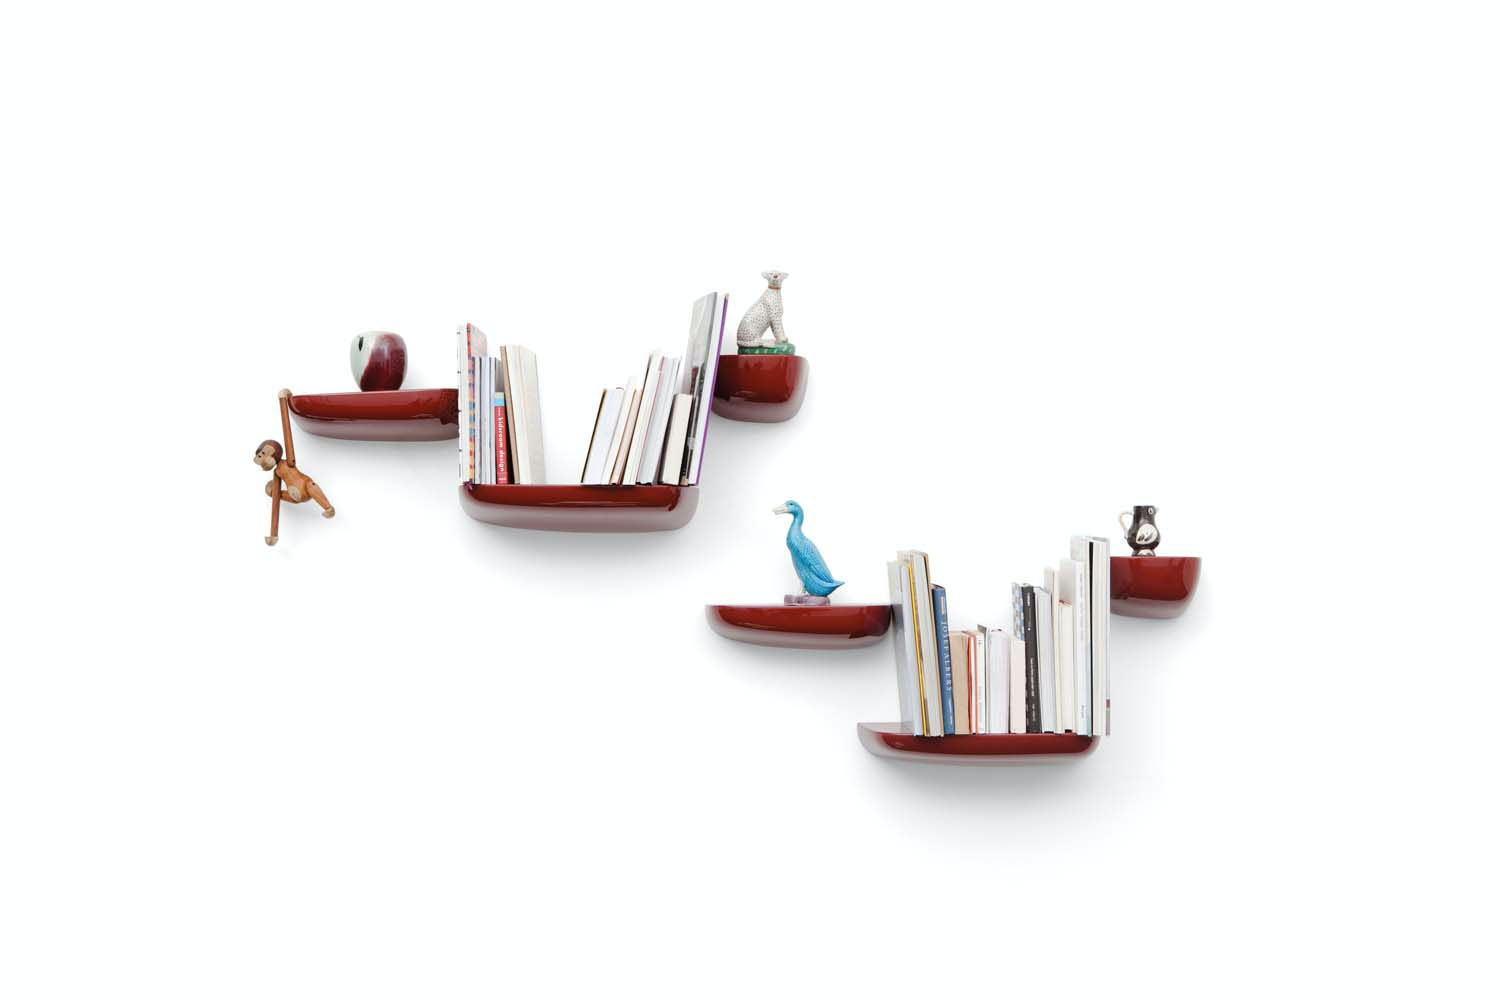 Corniches Small Wall Mounted Storage by Ronan & Erwan Bouroullec for Vitra